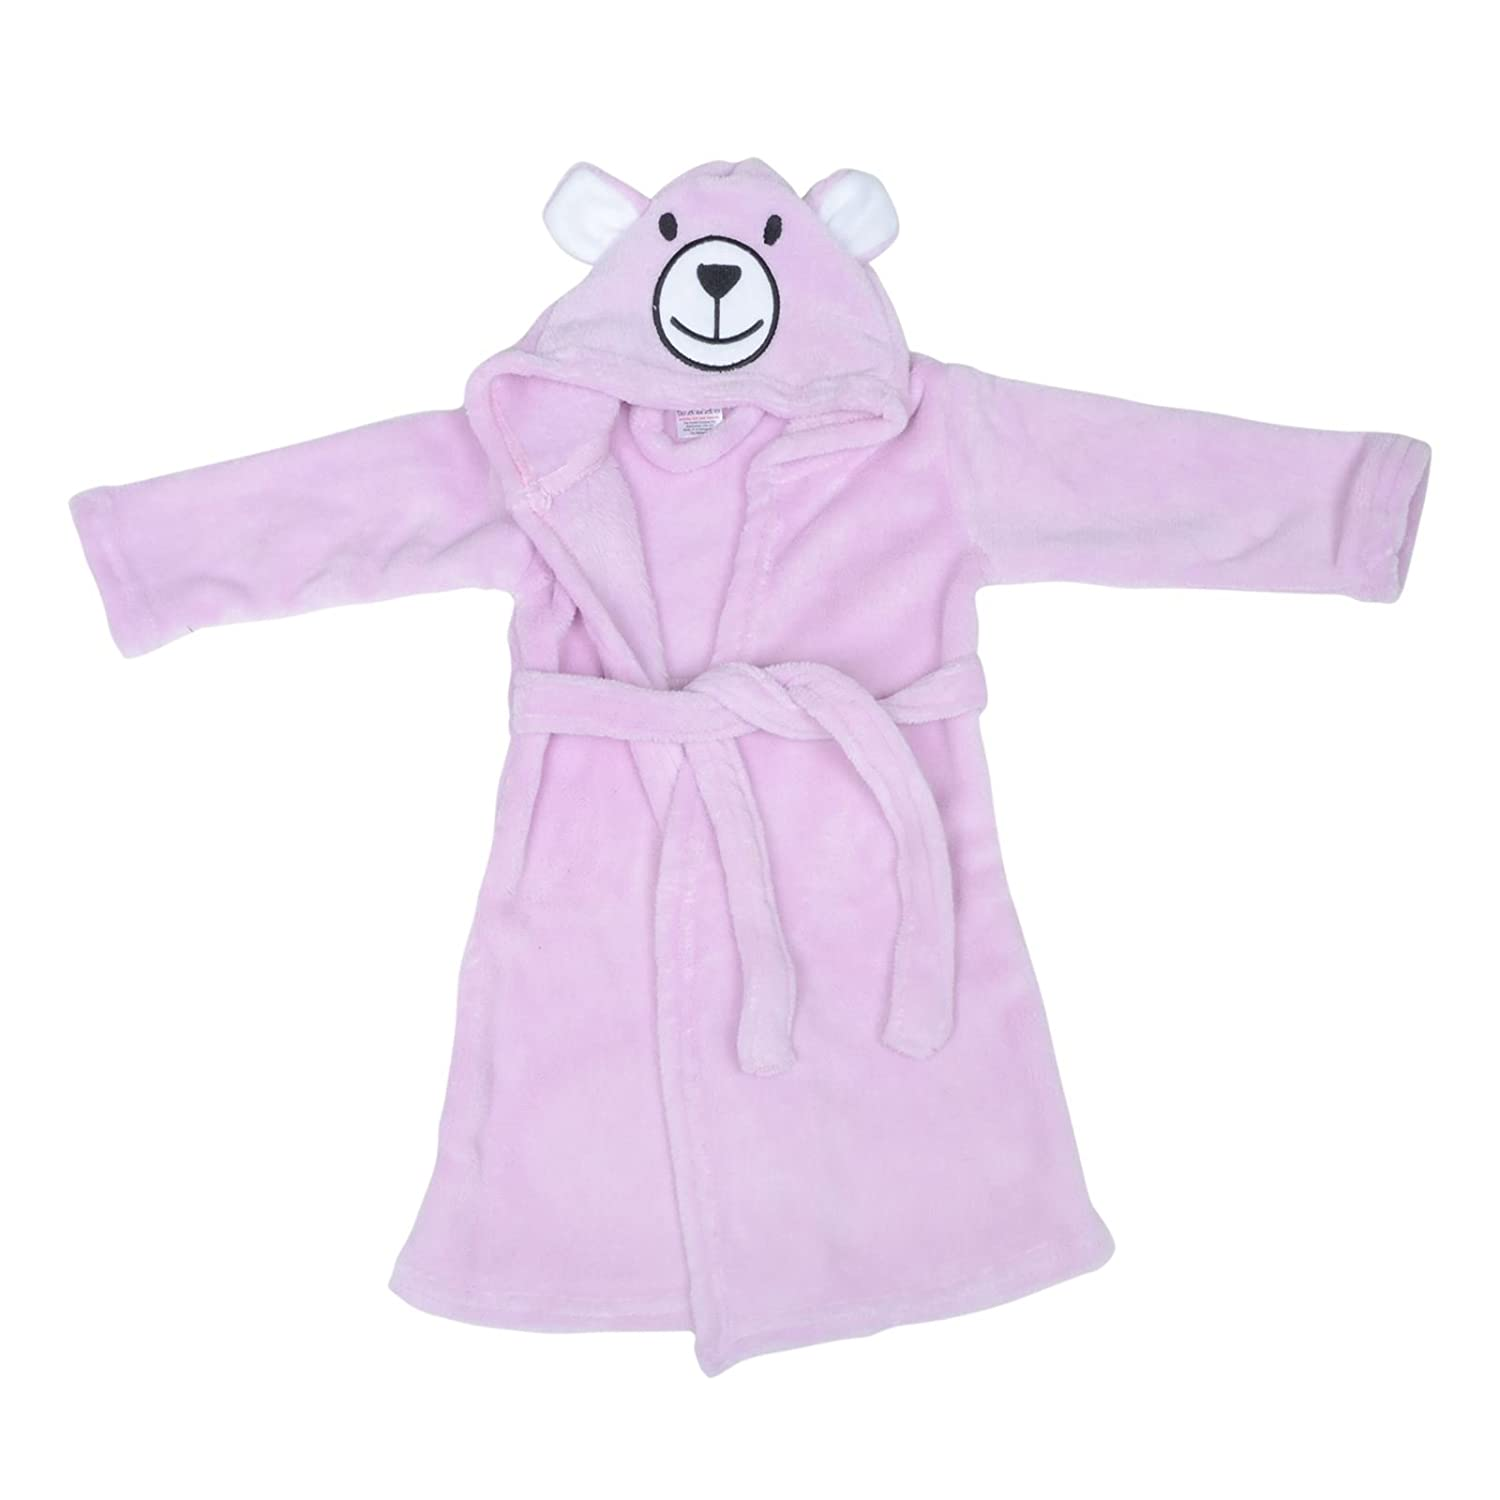 The Cookie Company Baby Toddler Bath Robes House Coats Dressing Gowns Bear Ears Pink/Blue/Grey